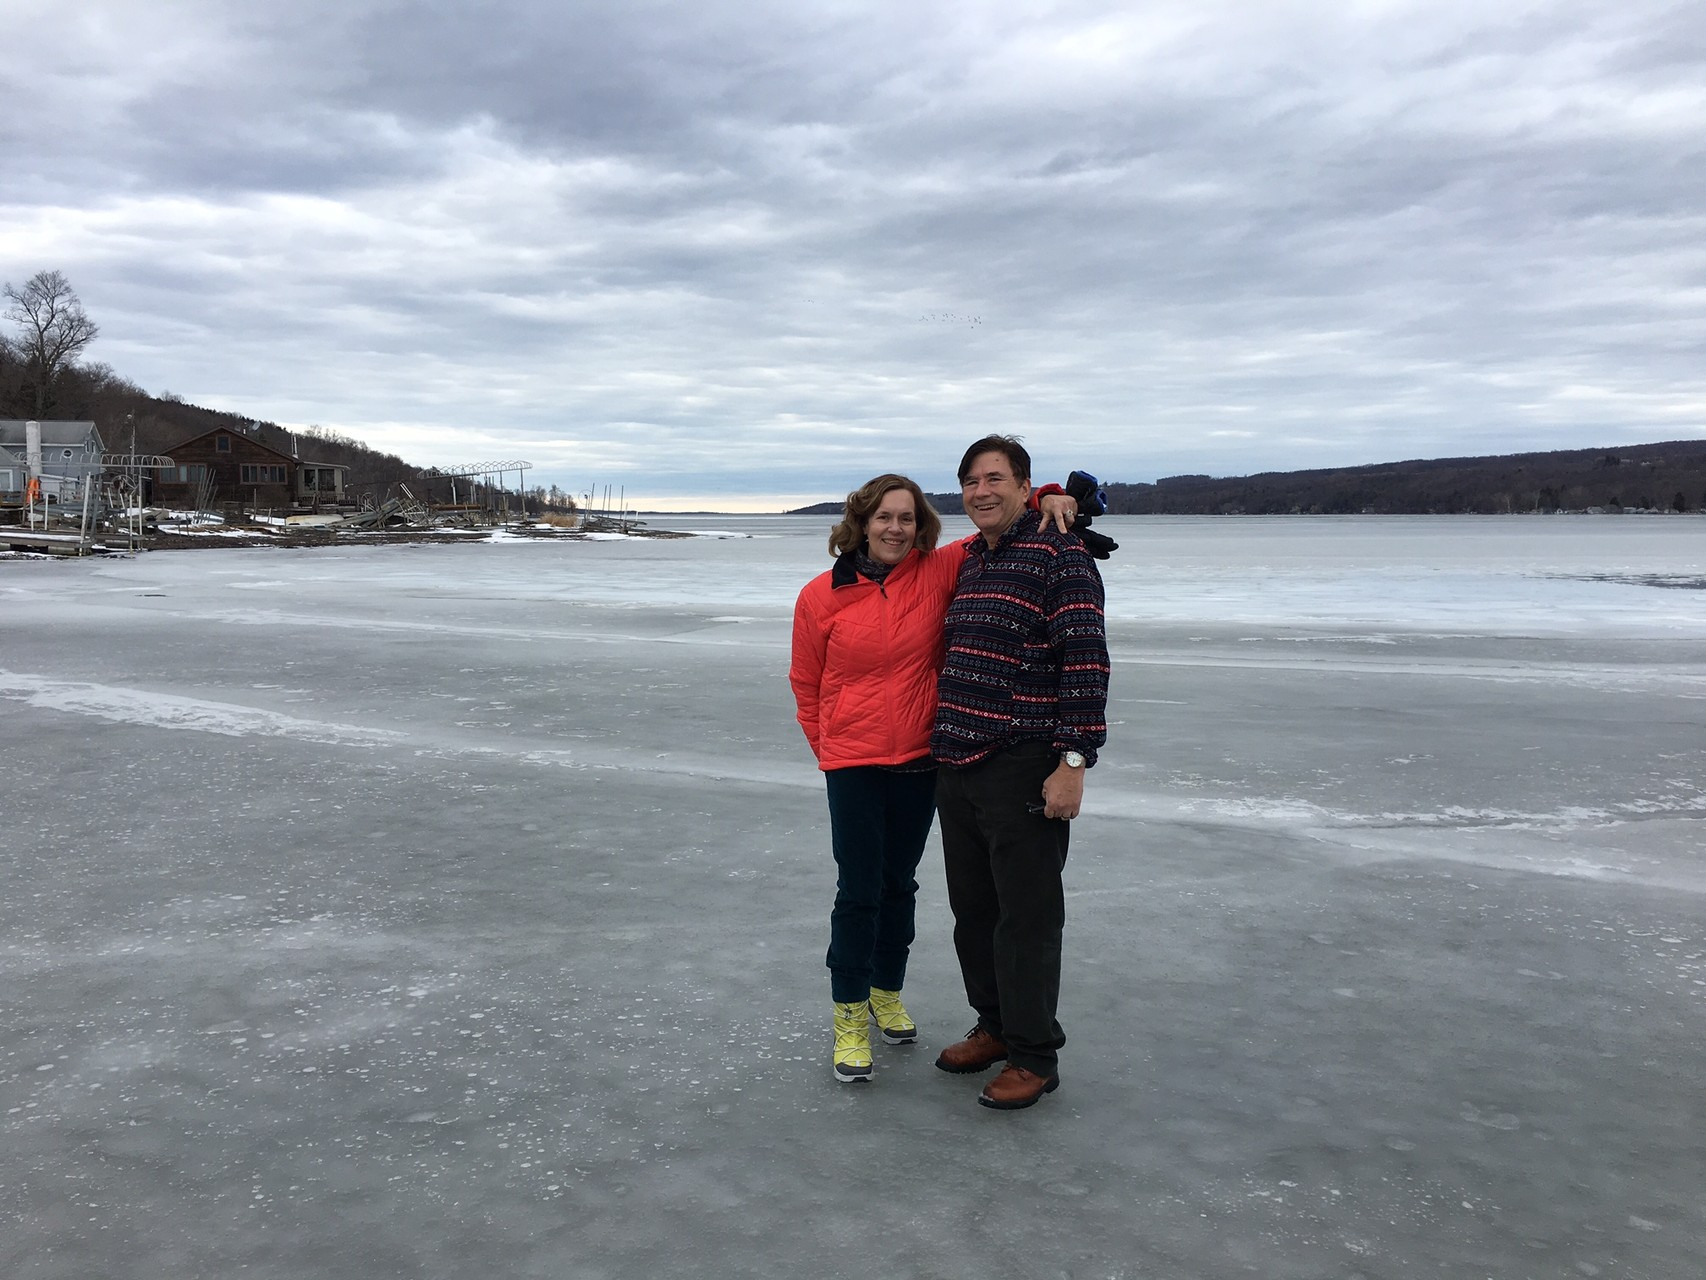 Lorraine & John on the Owasco Lake ice, Feb. 20, 2016